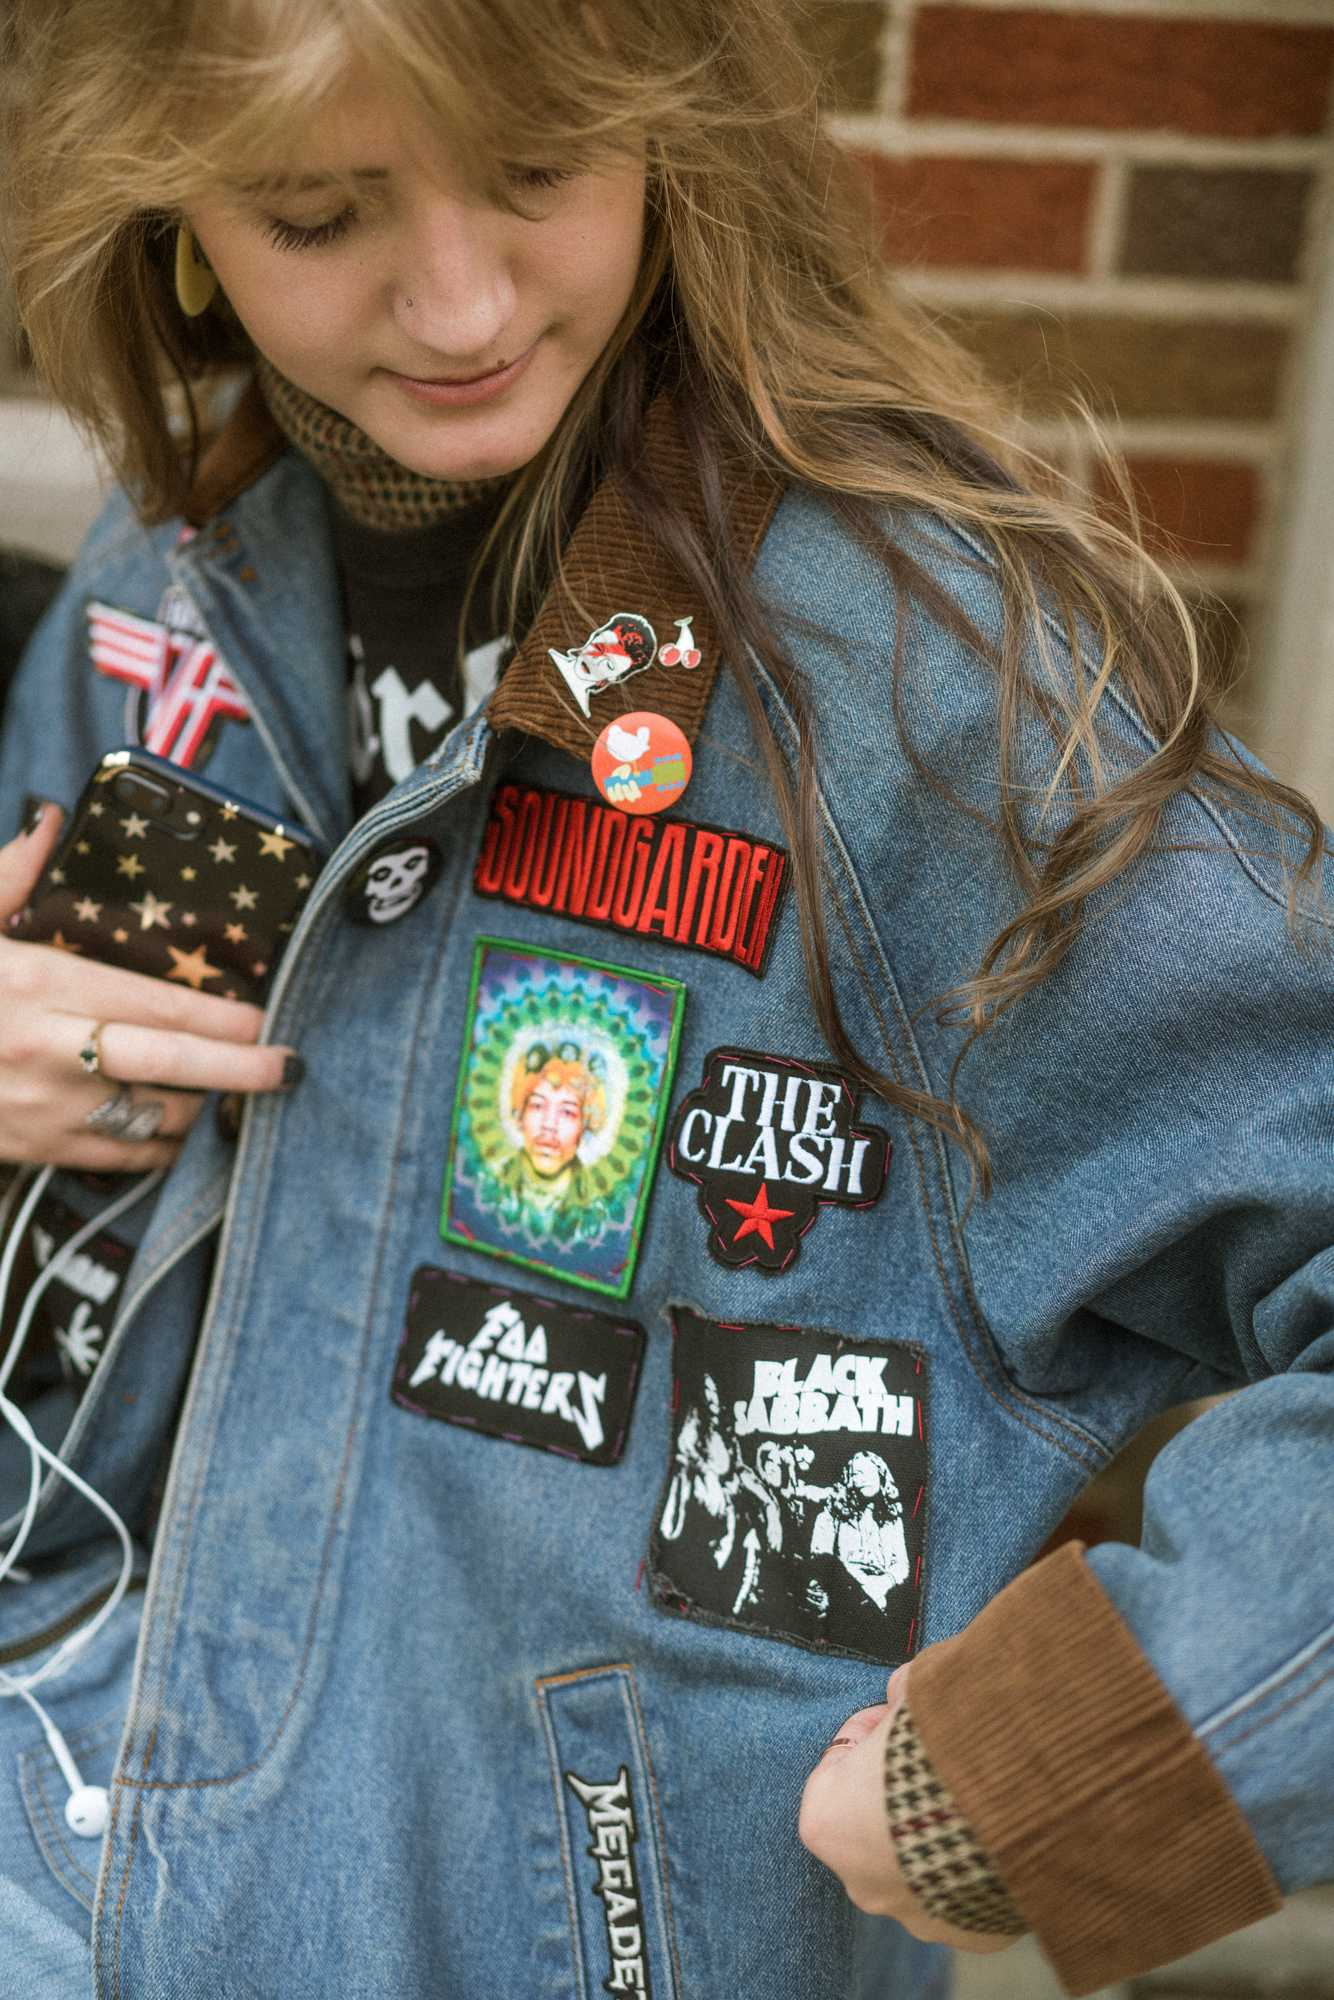 Shanelle+Meyer+shows+off+her+patches+on+her+demin+jacket.